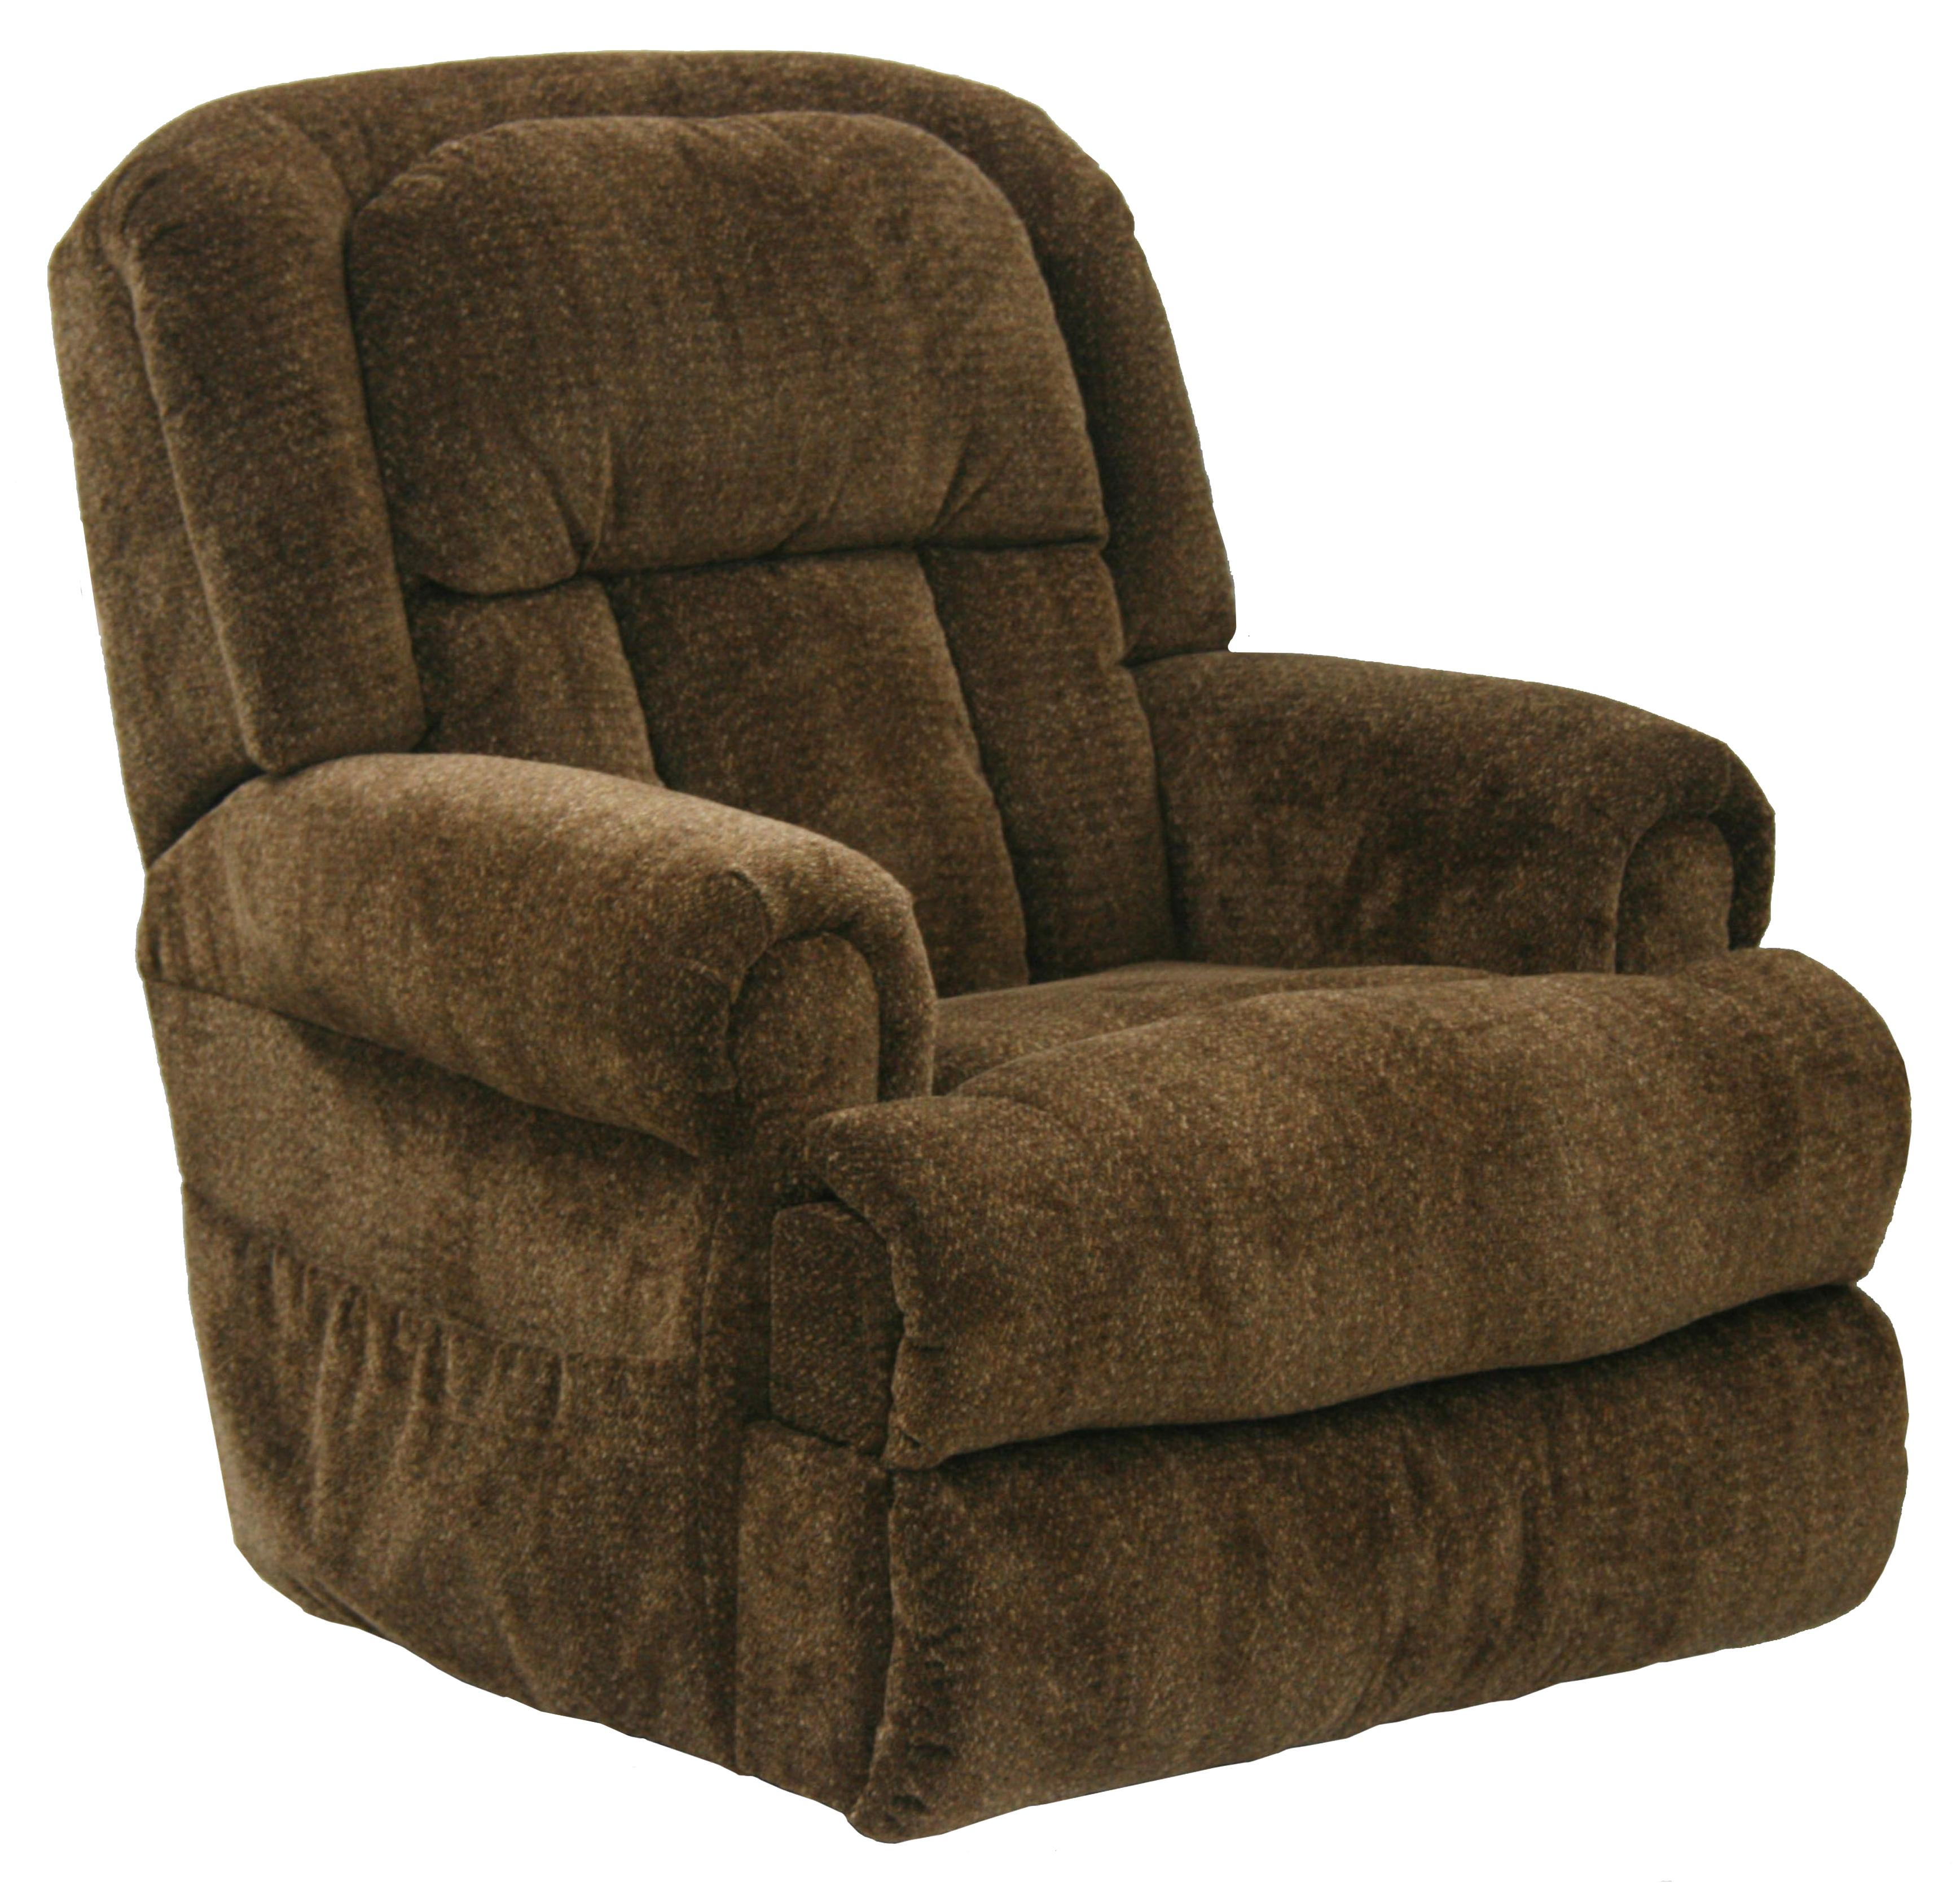 Catnapper Chair Catnapper Motion Chairs And Recliners Burns Lift Recliner